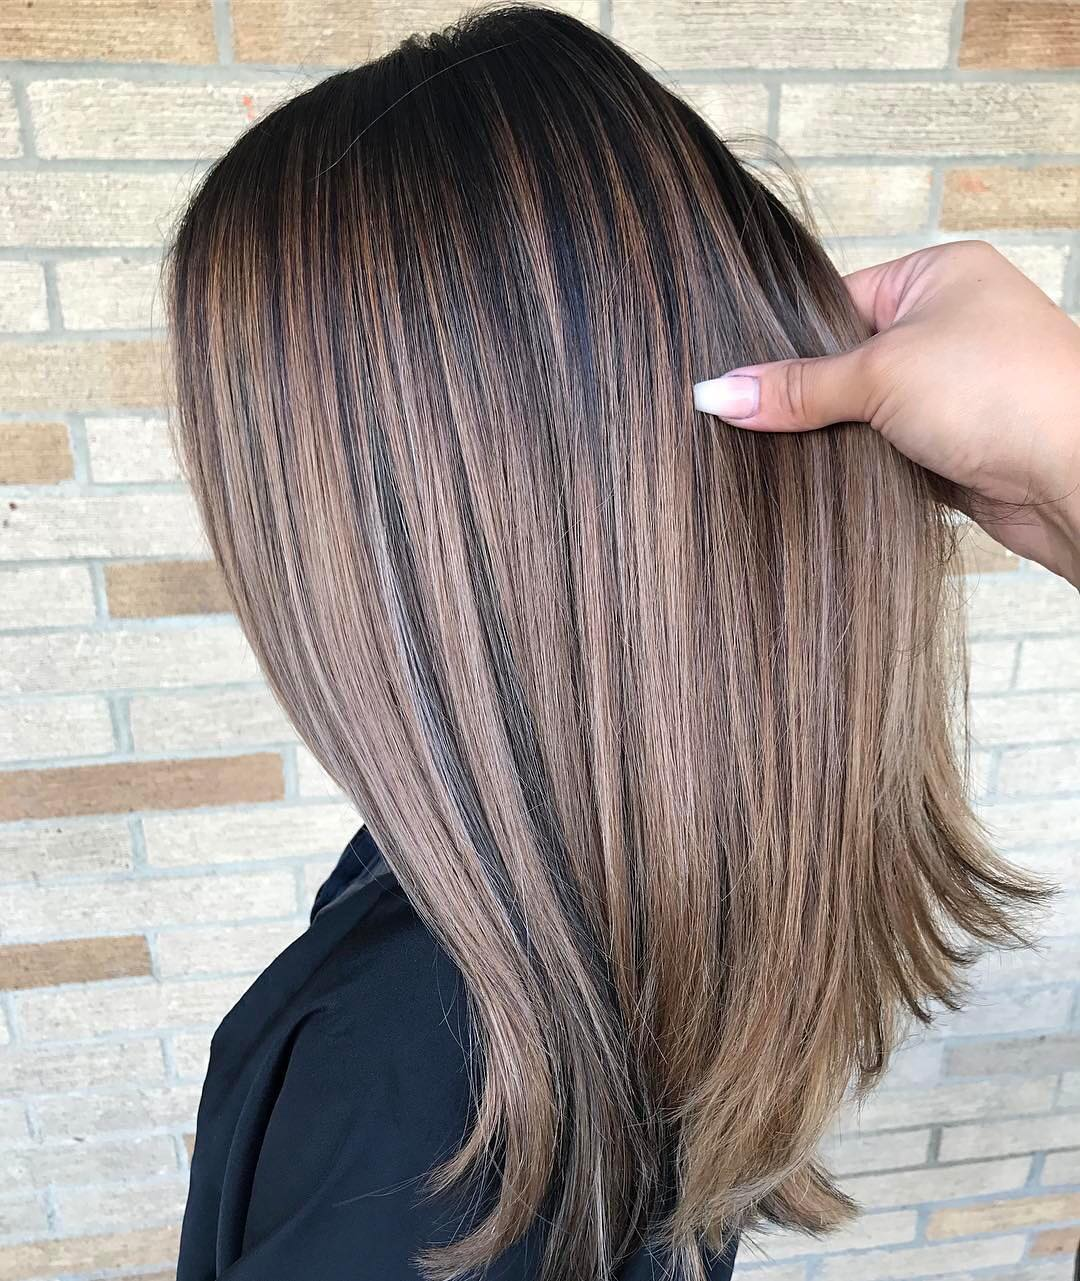 hair styling ideas for medium length hair medium haircut and color ideas haircuts models ideas 6796